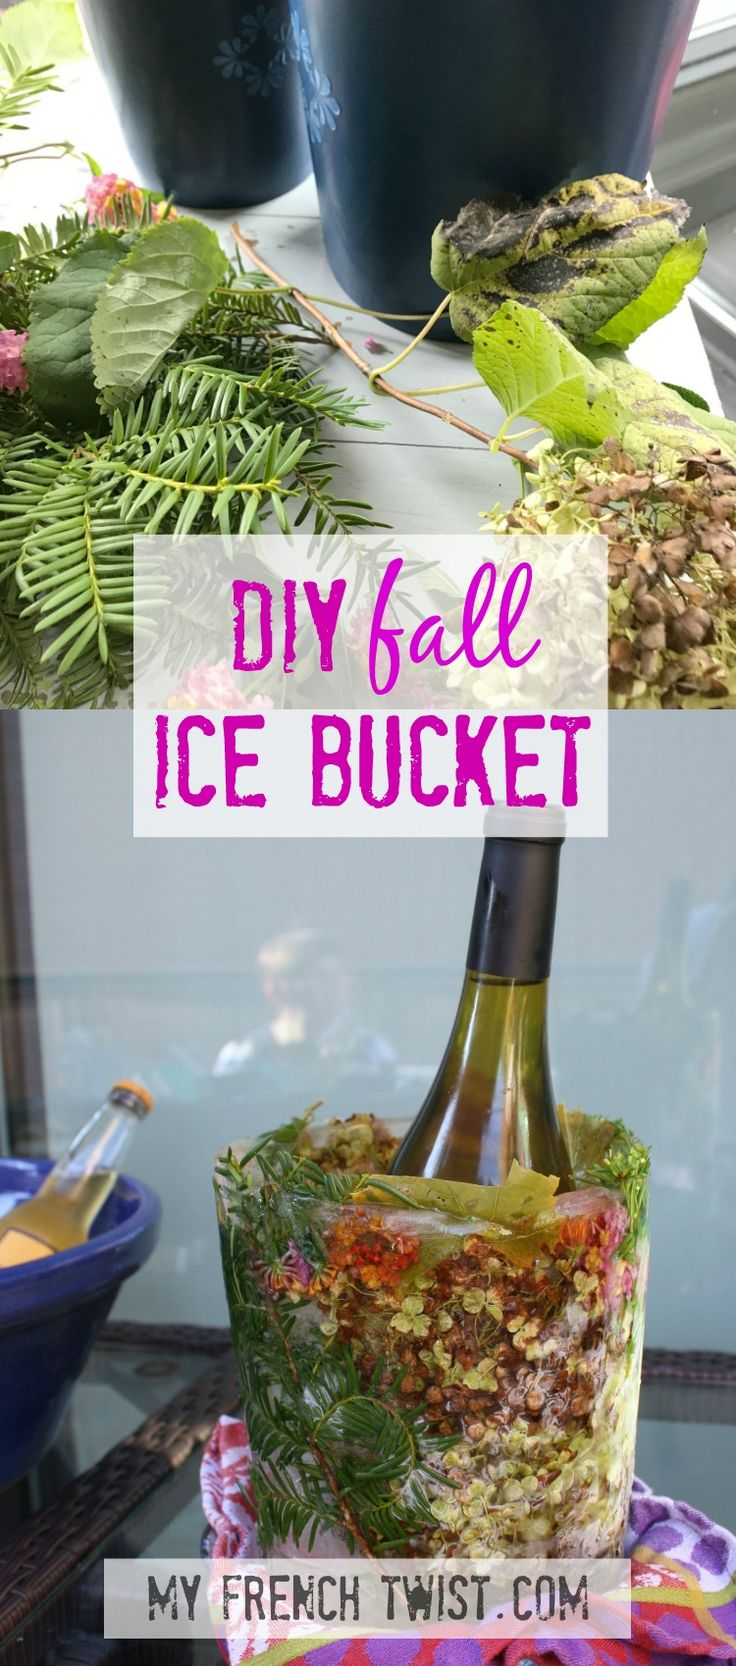 Make your own frozen ice bucket for Fall entertaining! http://www.myfrenchtwist.com/diy-ice-bucket/